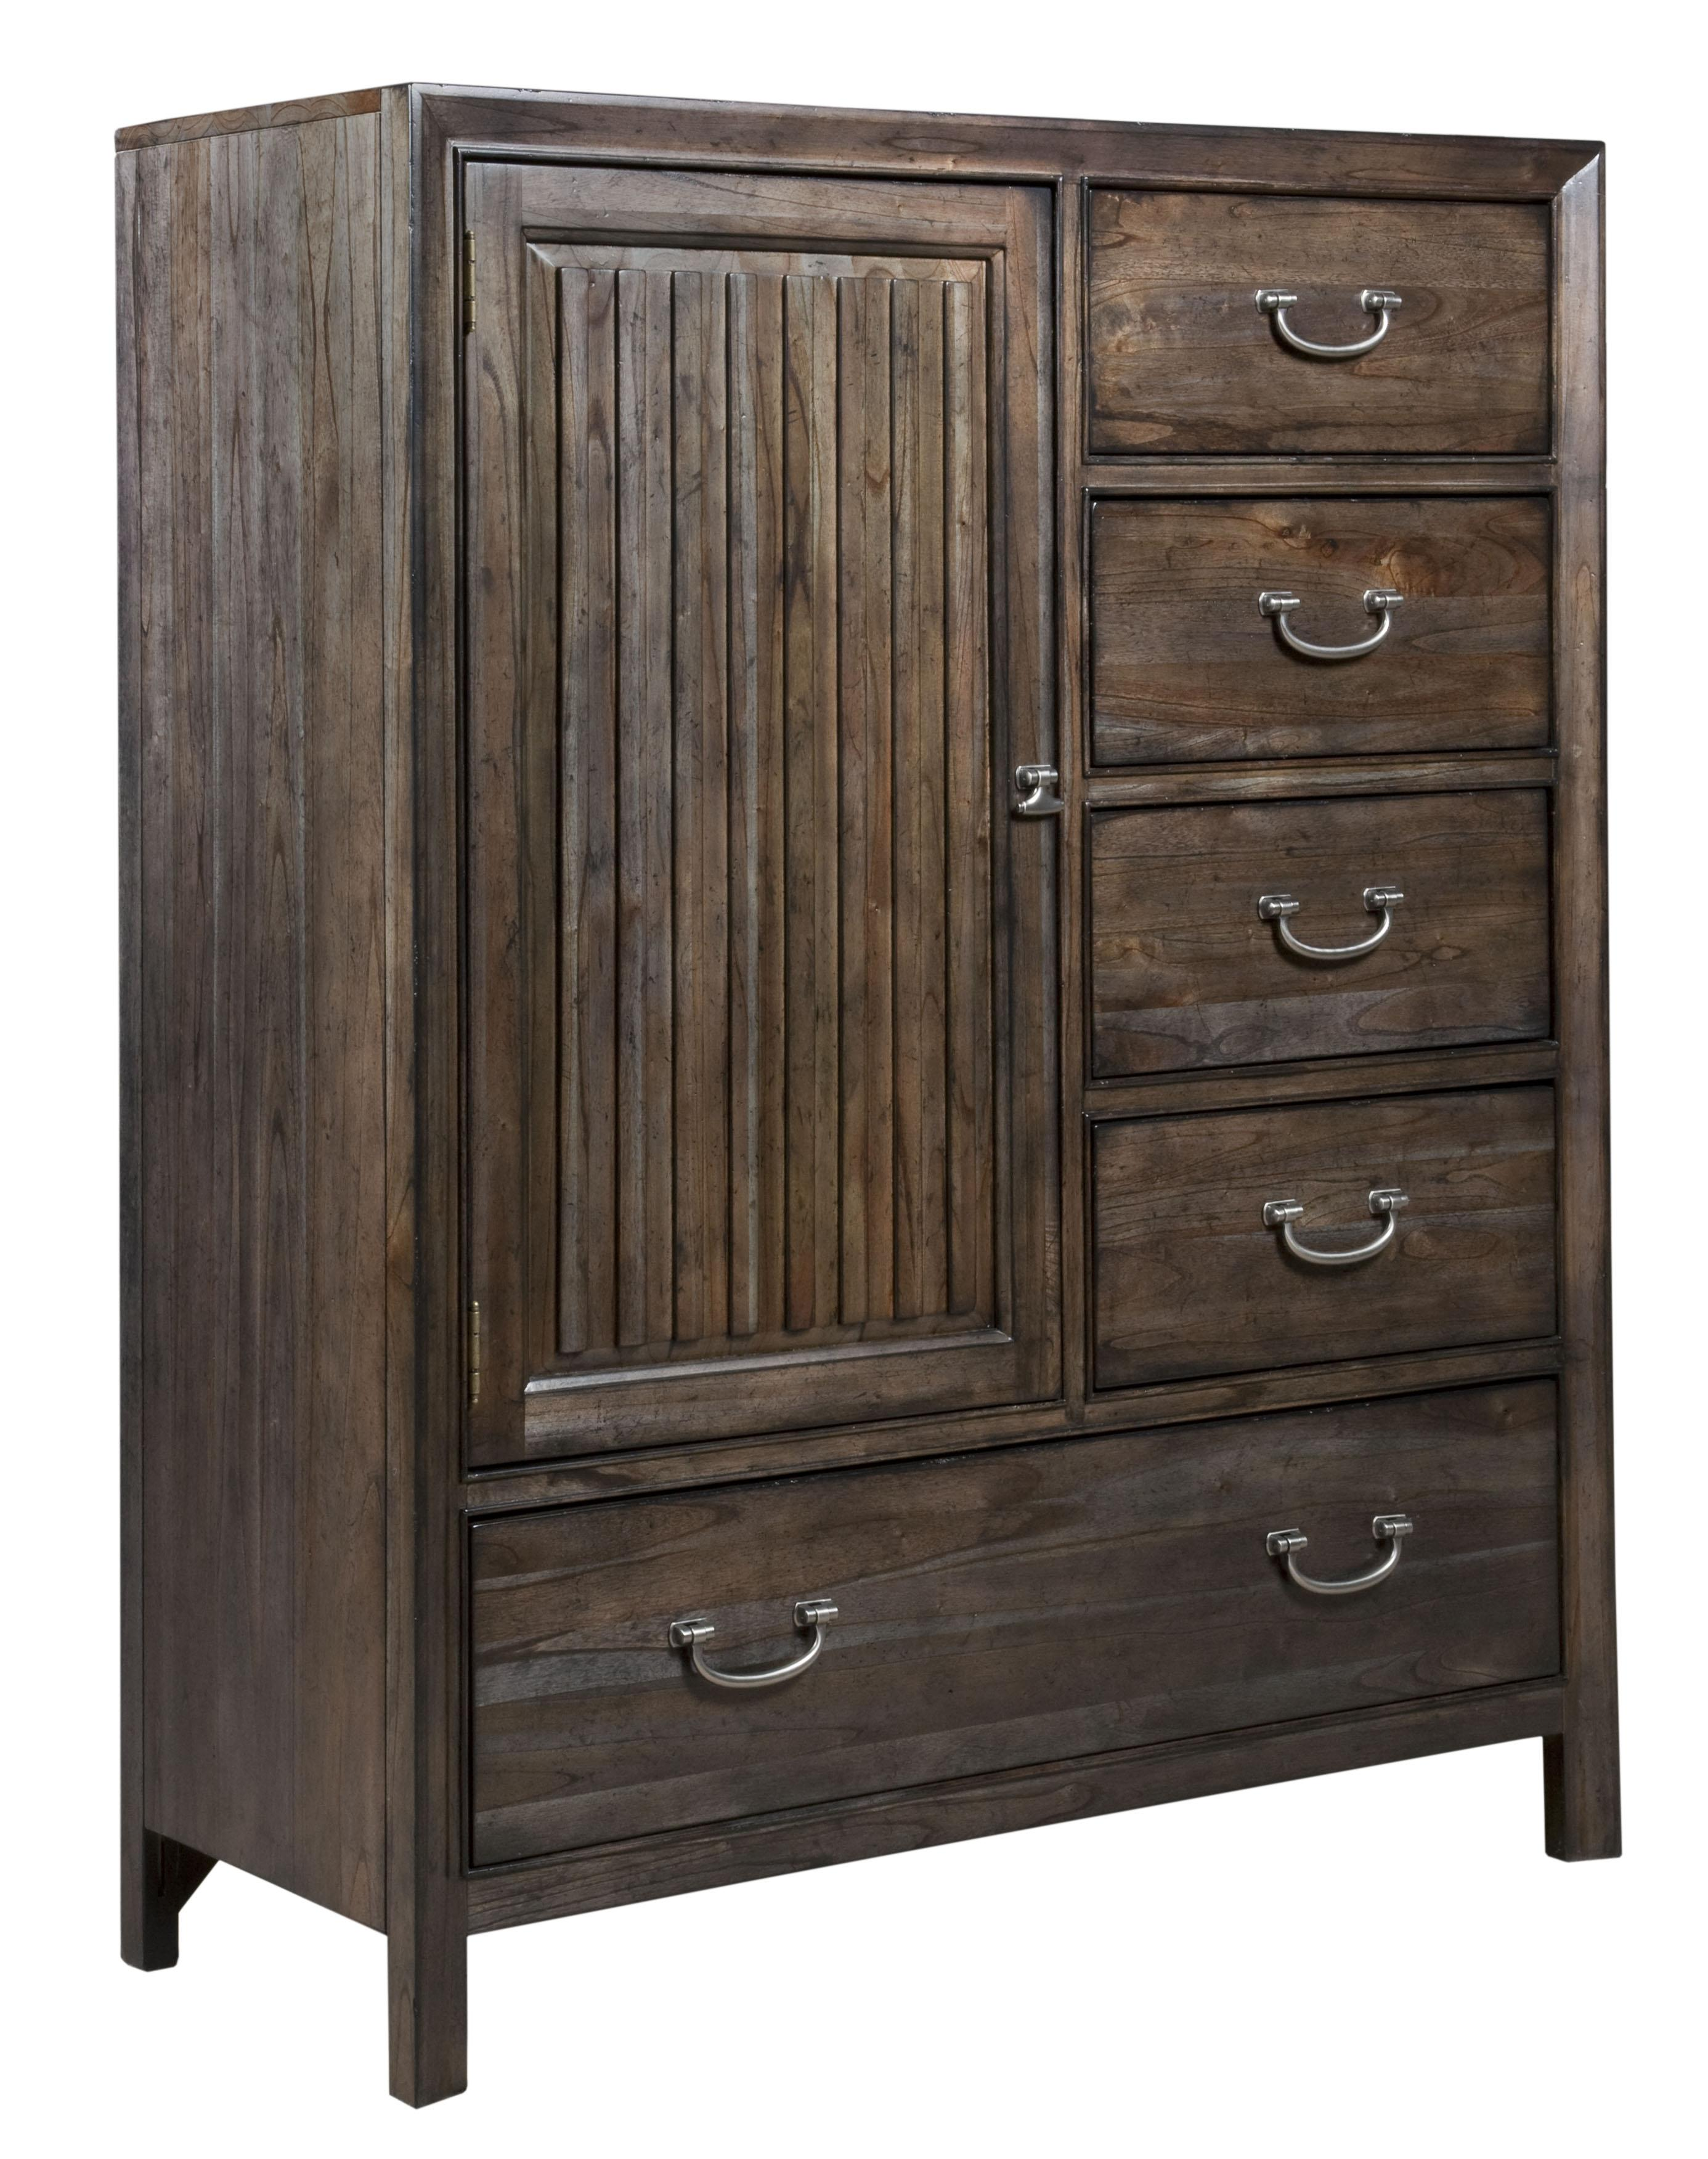 Kincaid Furniture Montreat Tucker Chest - Item Number: 84-164